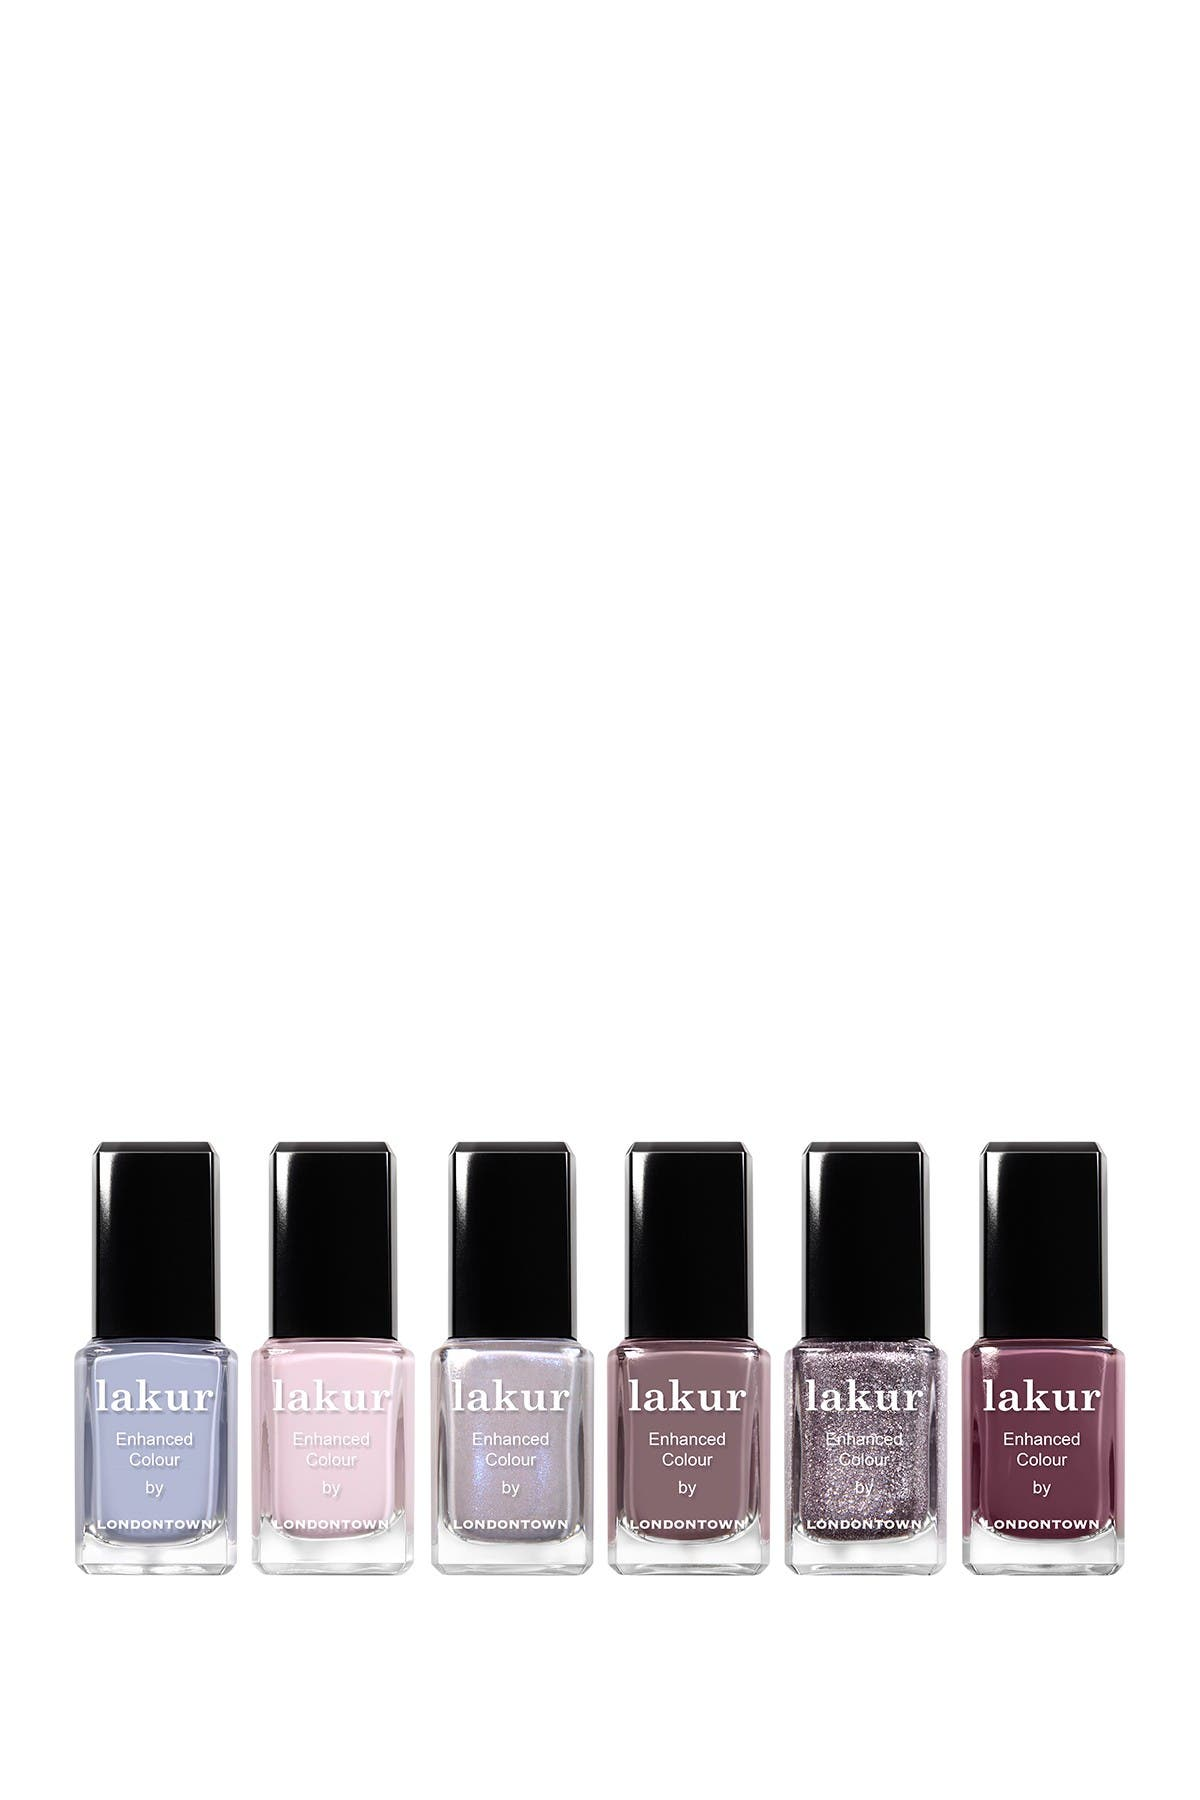 Image of LondonTown Soft & Sultry Lakur Collection